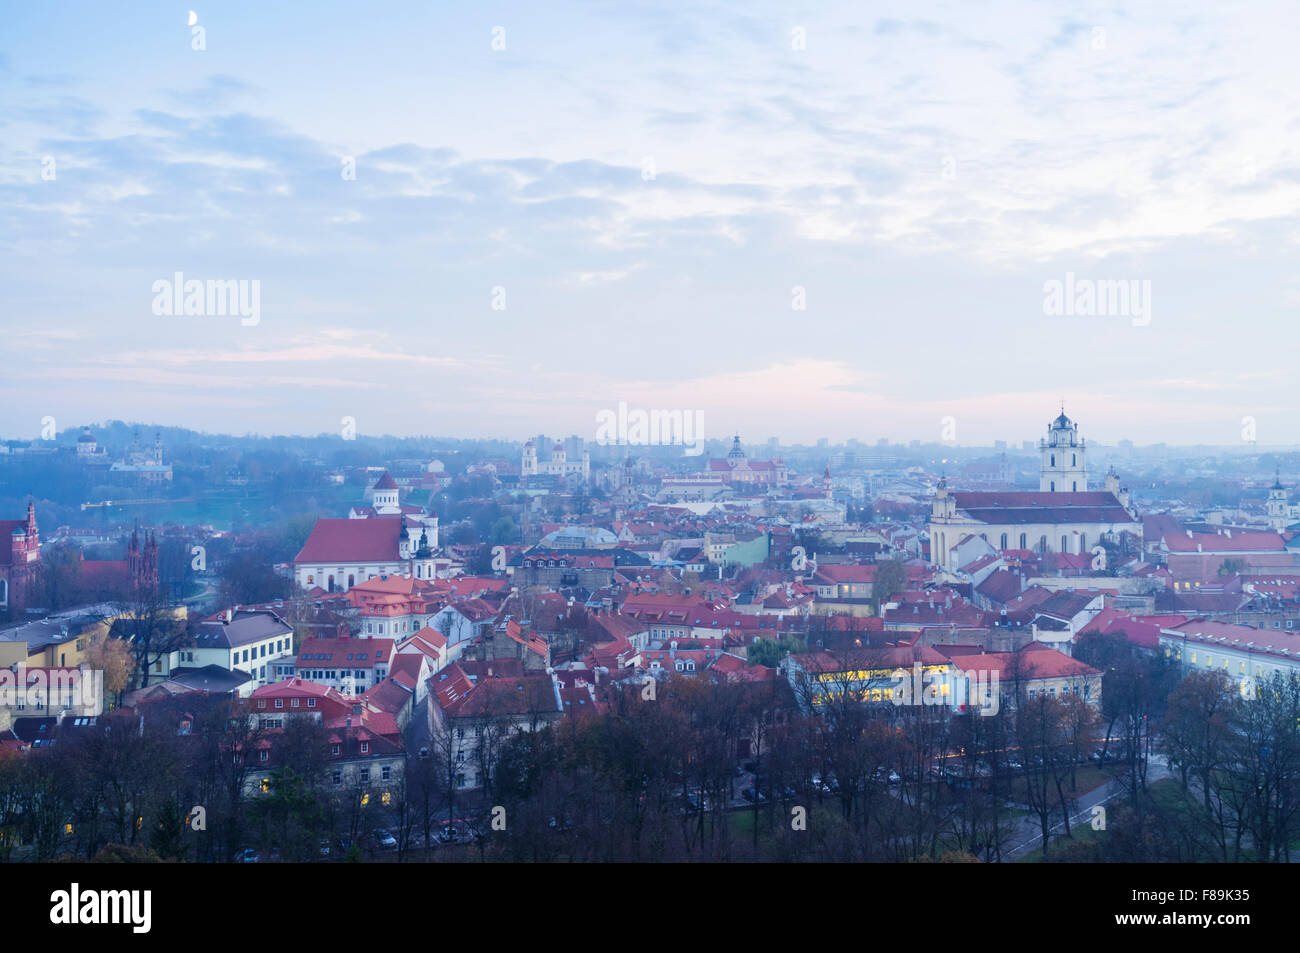 Old town overview at dusk. Vilnius, Lithuania, Europe - Stock Image